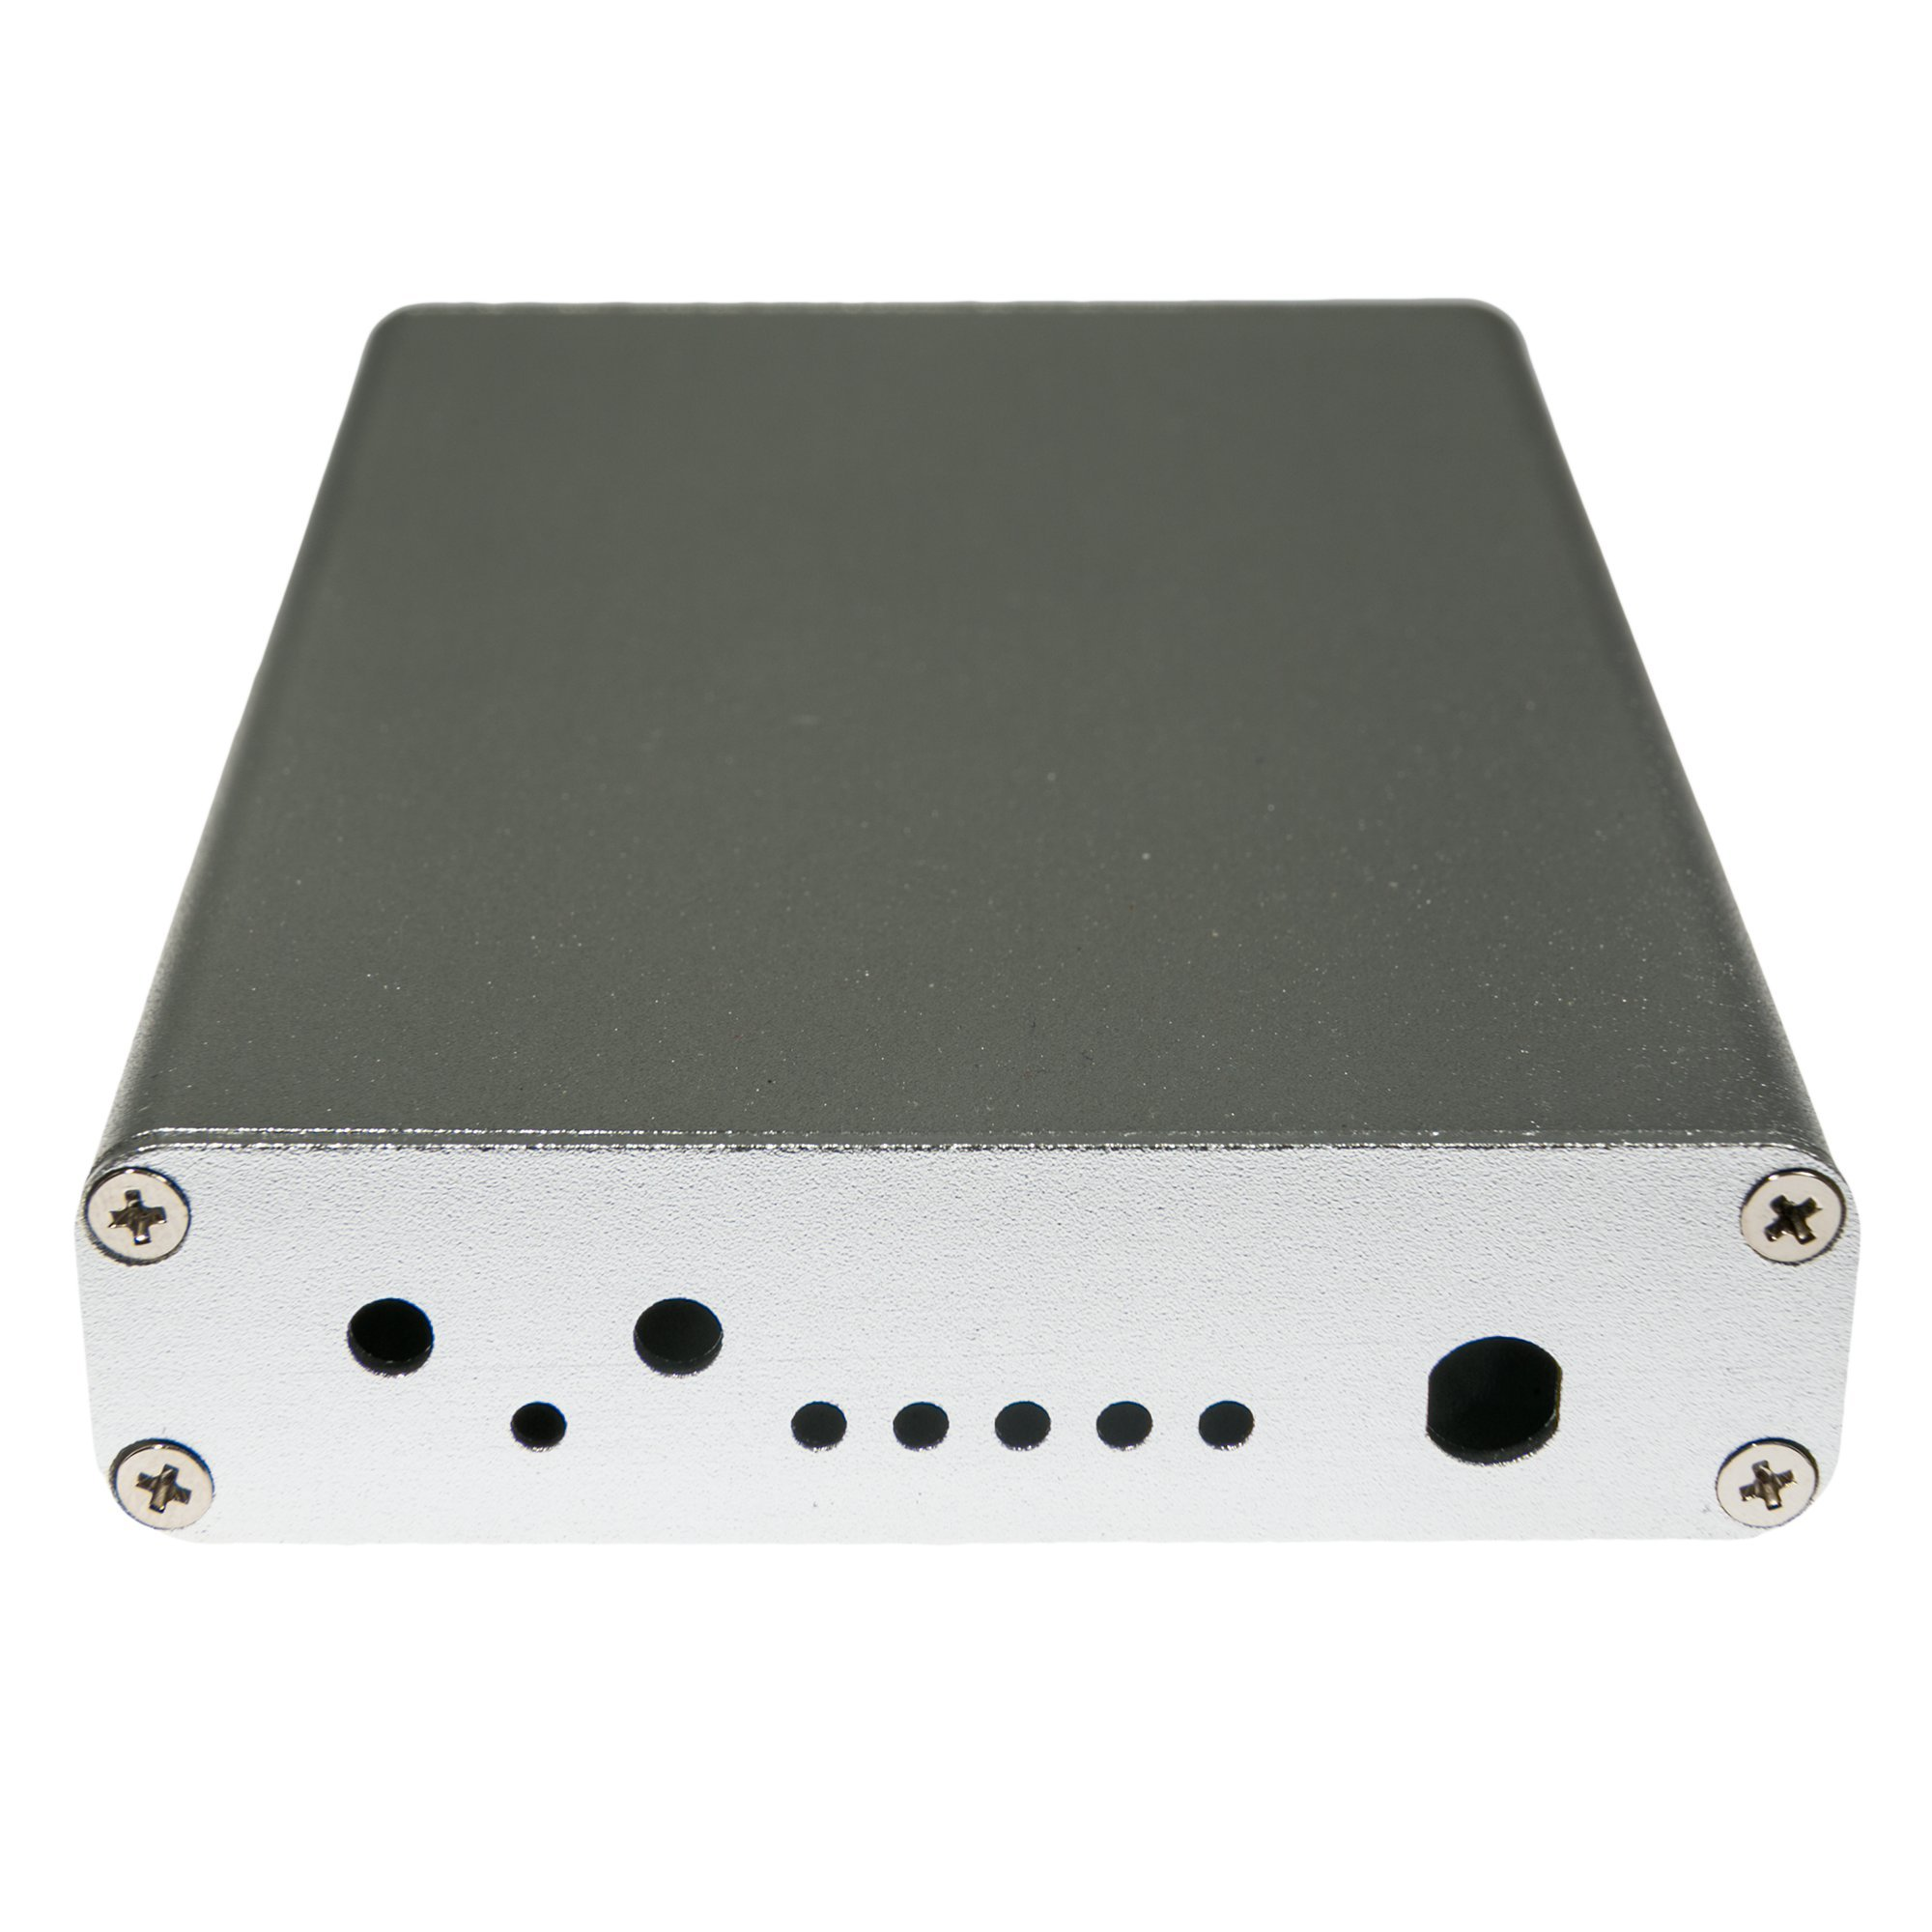 NooElec Extruded Aluminum Enclosure Kit for HackRF One by Great Scott Gadgets (Silver)